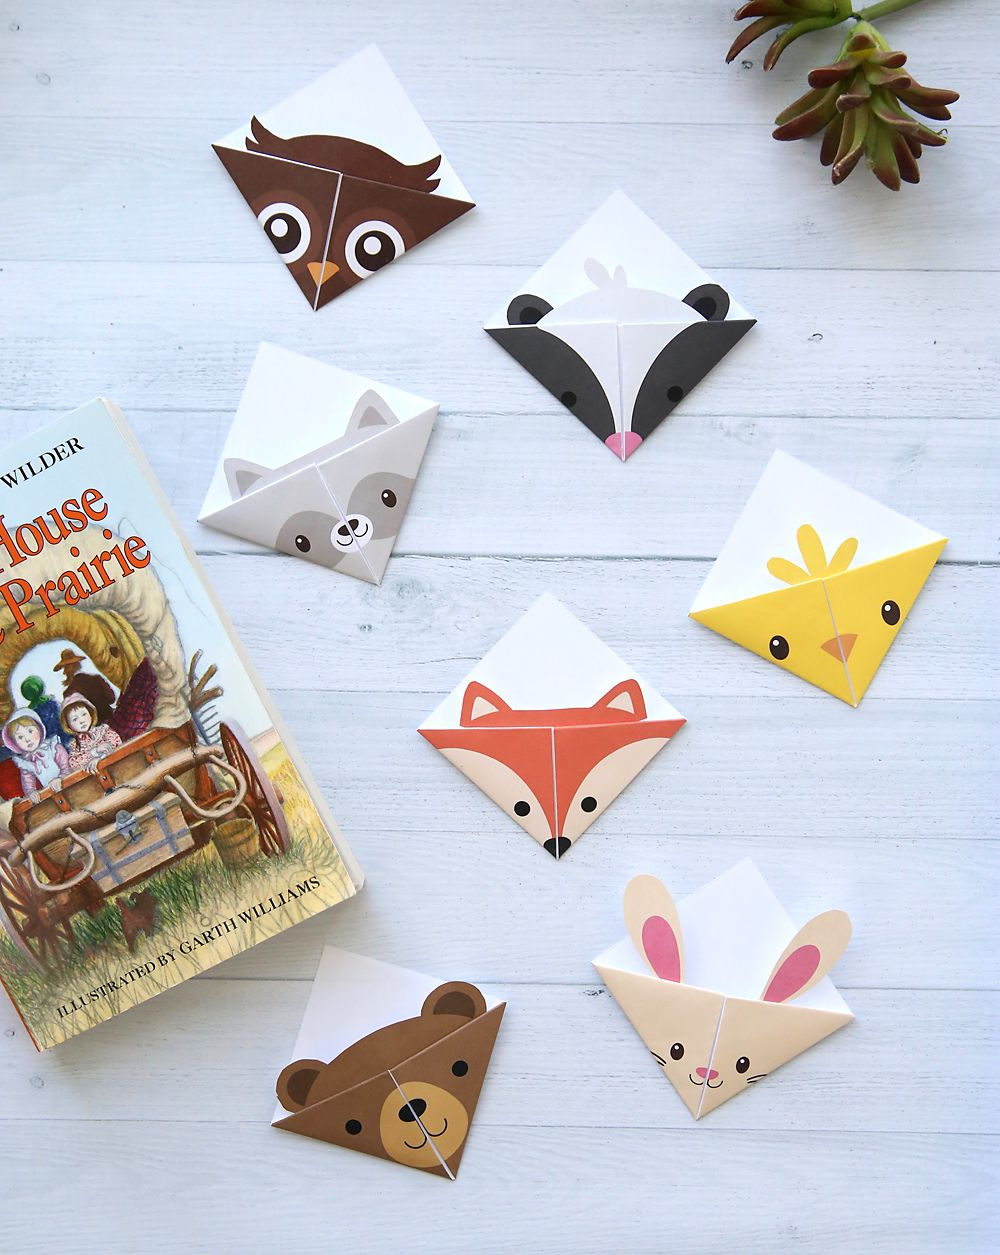 diy woodland animals origami bookmarks {print + fold | bookmarks